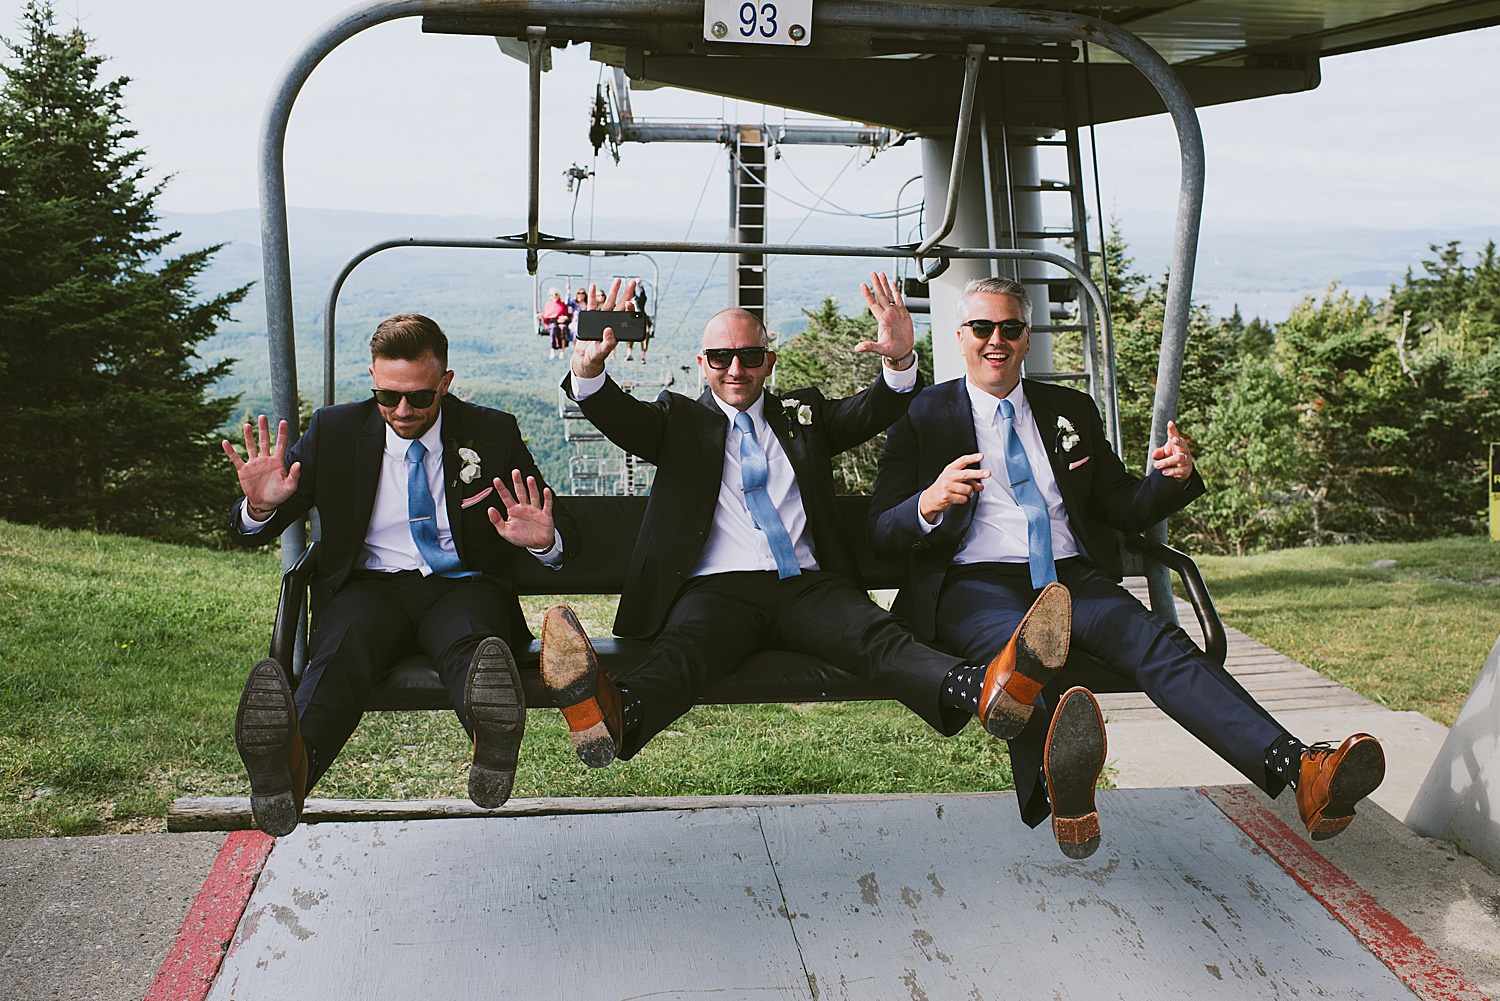 groomsmen riding up on the chair lift